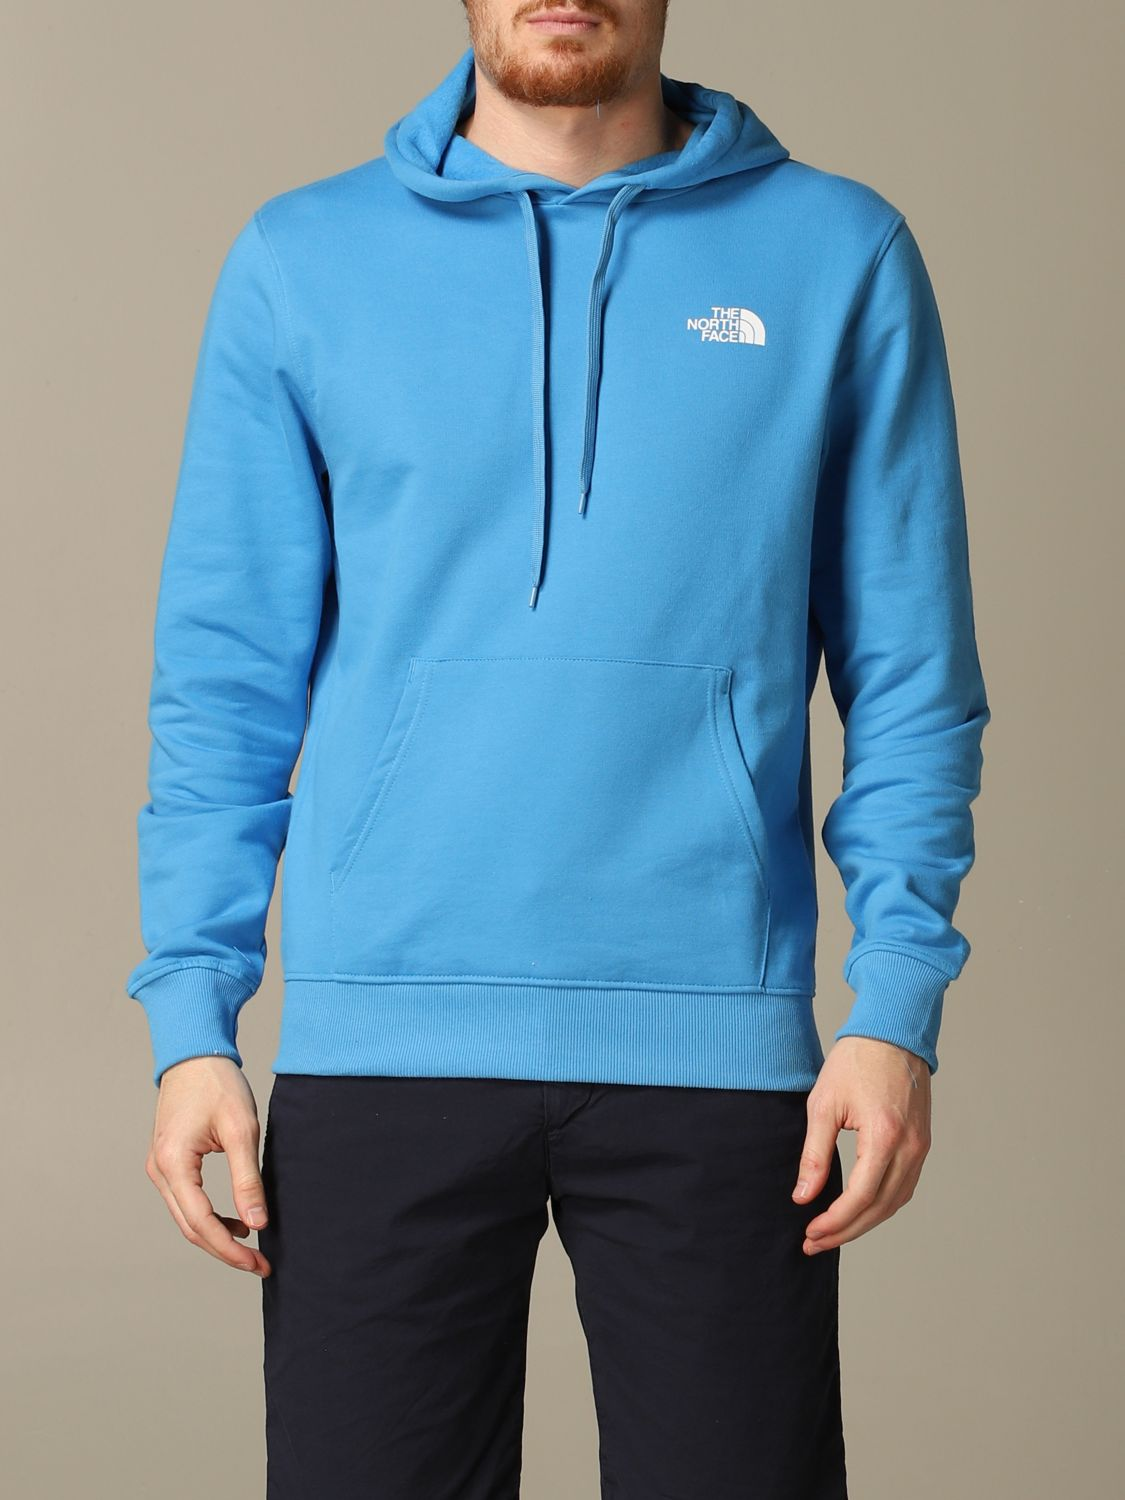 Sweatshirt The North Face: Sweatshirt men The North Face gnawed blue 1